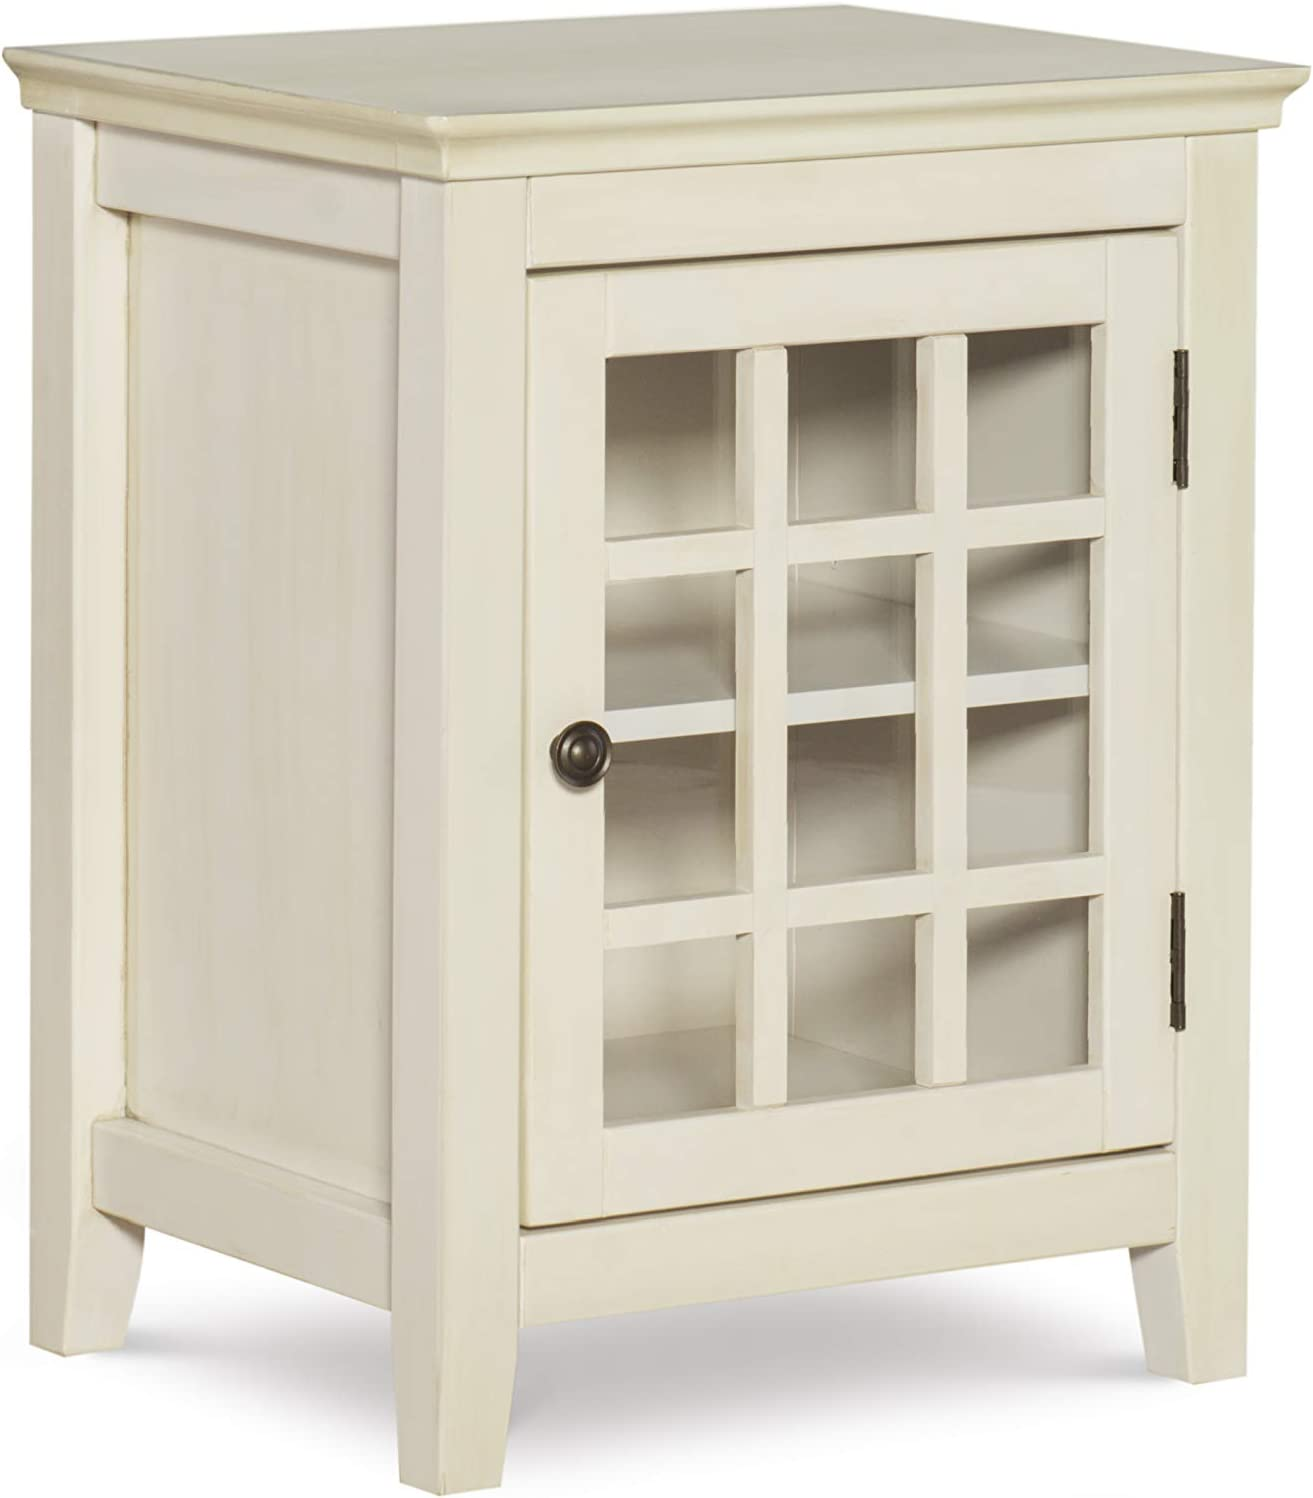 Linon Reed Distressed White Single Door Cabinet